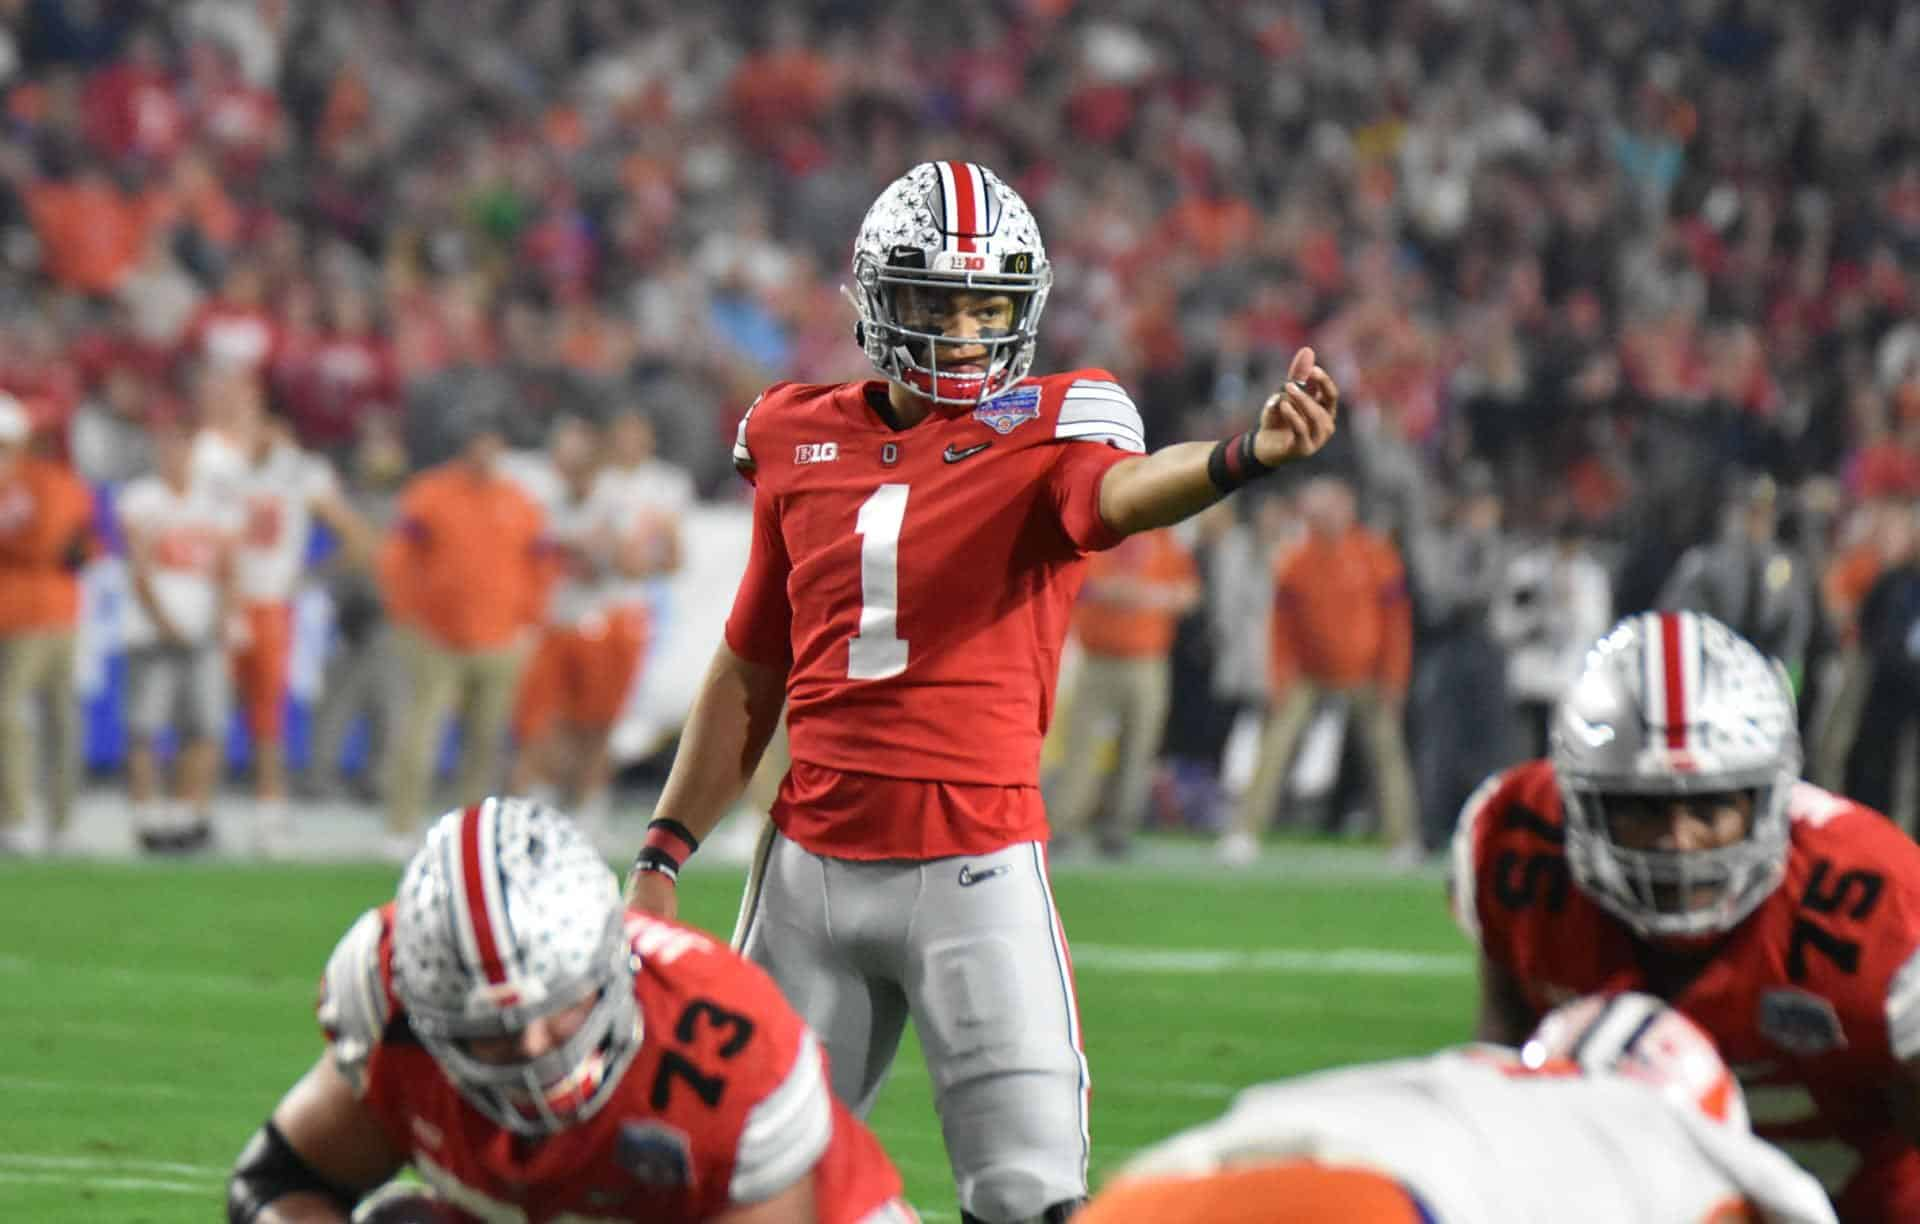 2021 NFL Draft: The most overrated prospects heading into next season